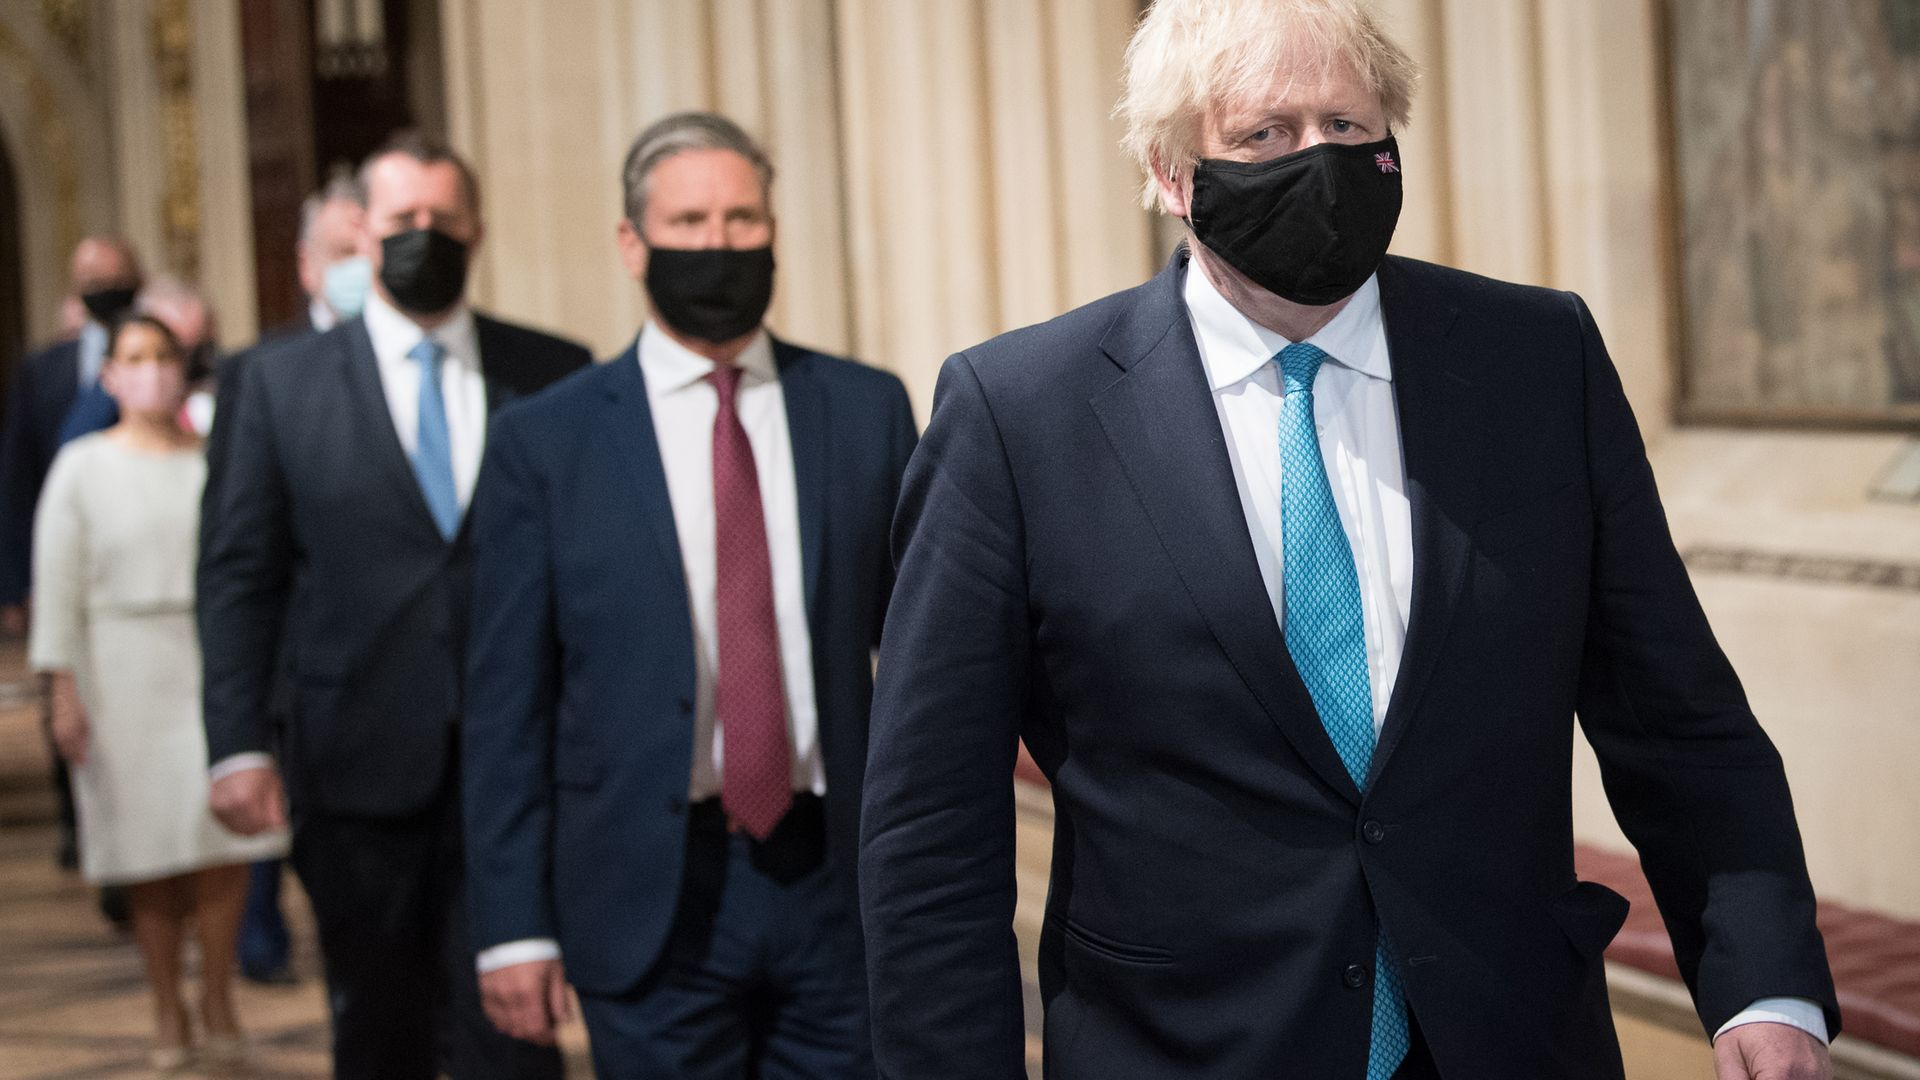 Boris Johnson has said the government will set up an independent public inquiry with statutory powers into the handling of the coronavirus pandemic - Credit: PA